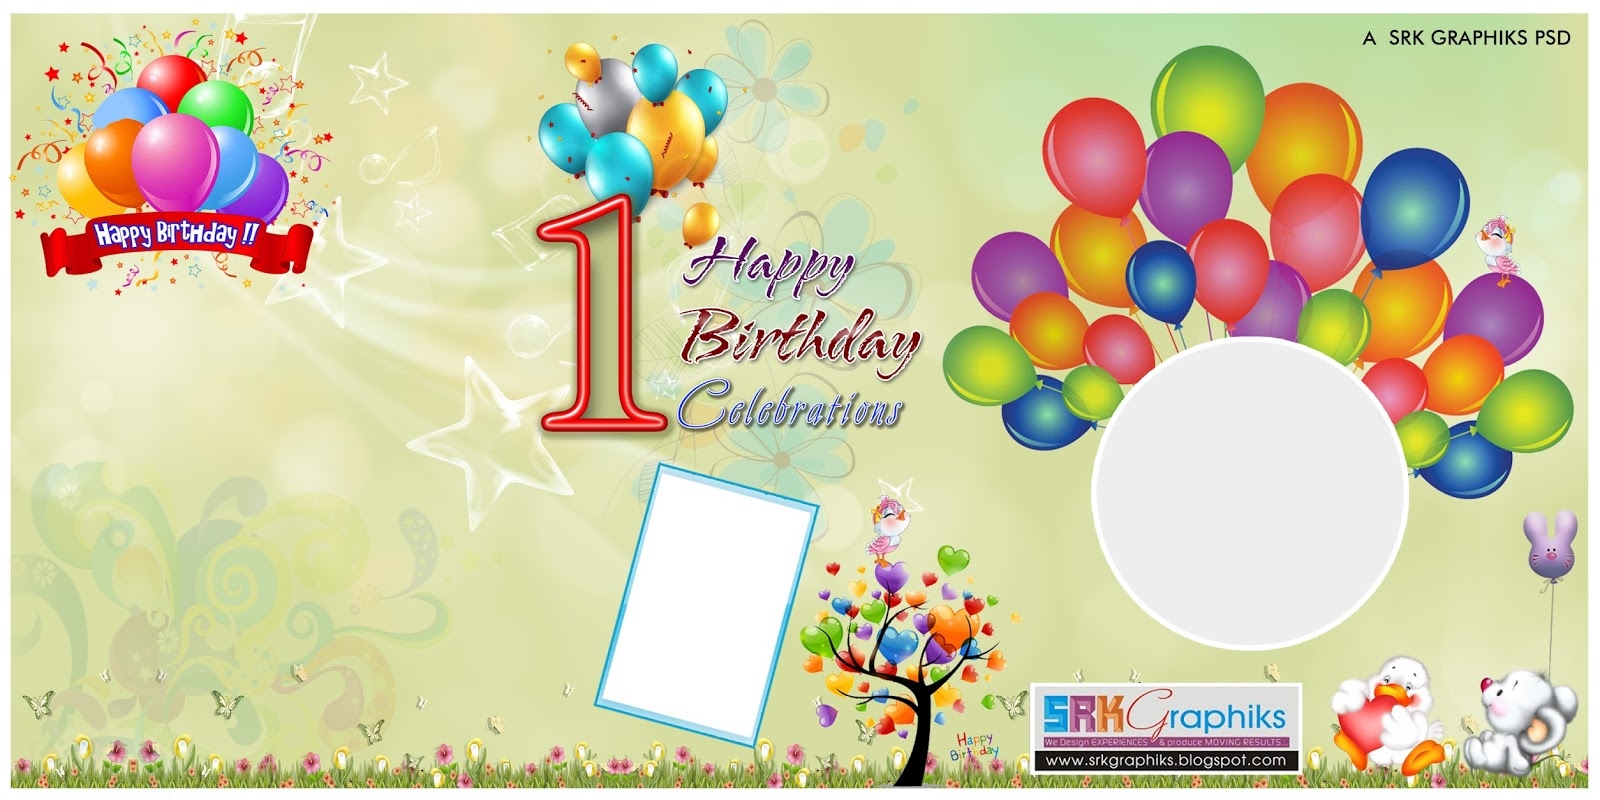 happy 1st birthday background ; 1st%2520birthday%2520banner%2520background%2520design%2520;%25205%25252B%252525C3%25252597%25252B10